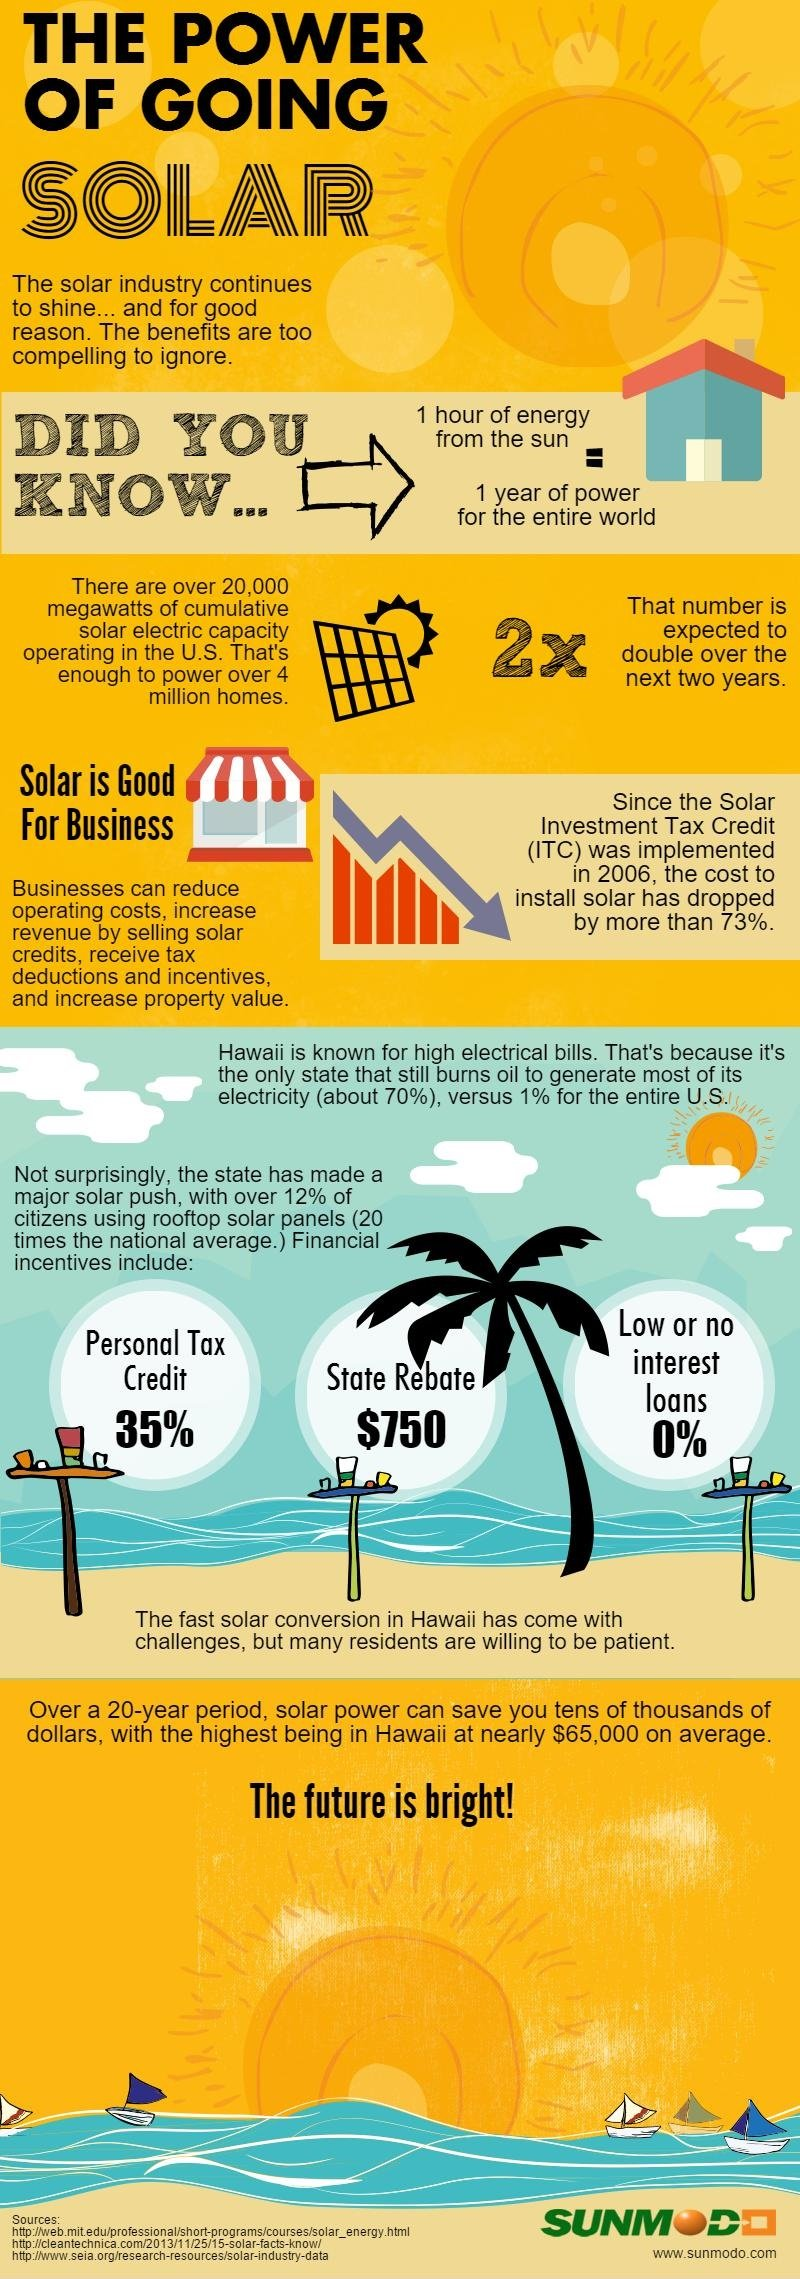 Power of Going Solar